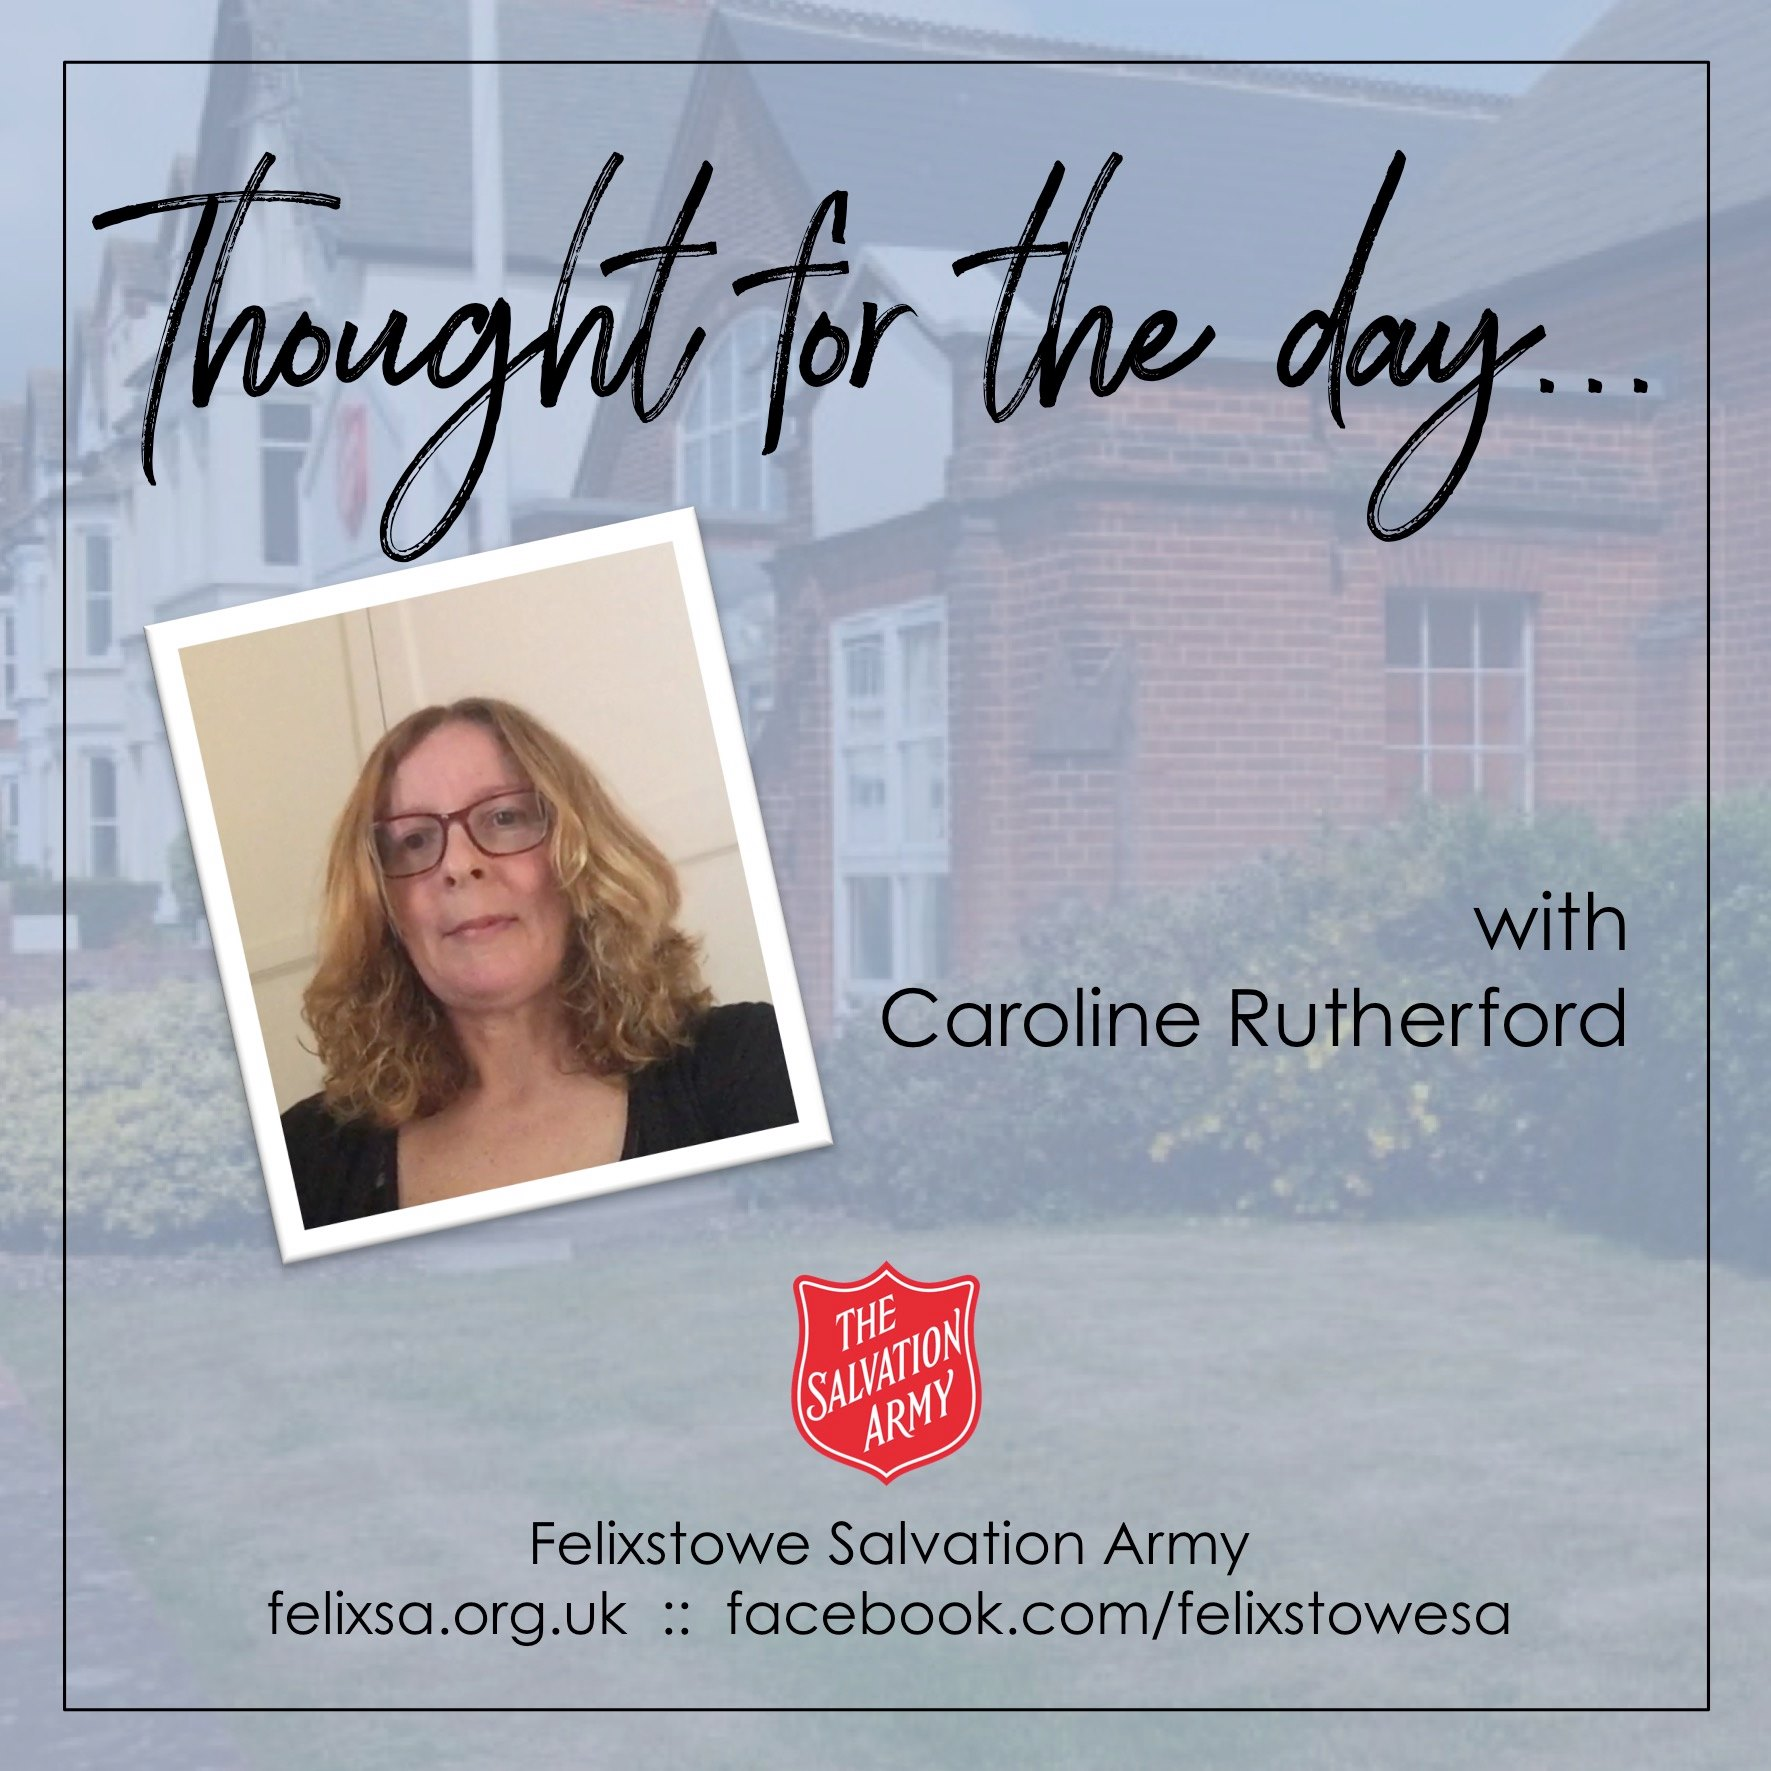 Thought for the Day with Caroline Rutherford